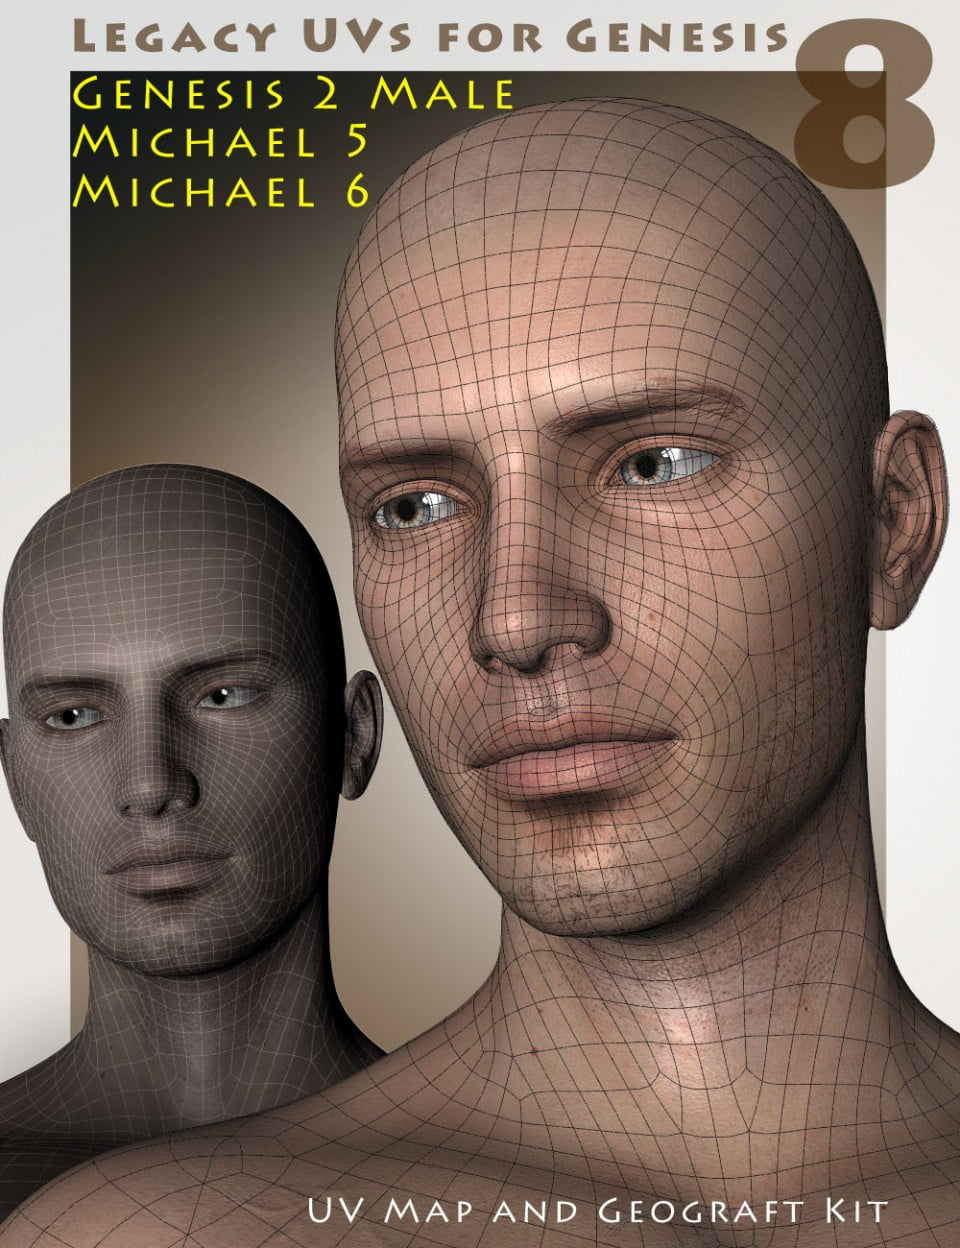 Legacy UVs for Genesis 8: Genesis 2 Male, Michael 5 and Michael 6